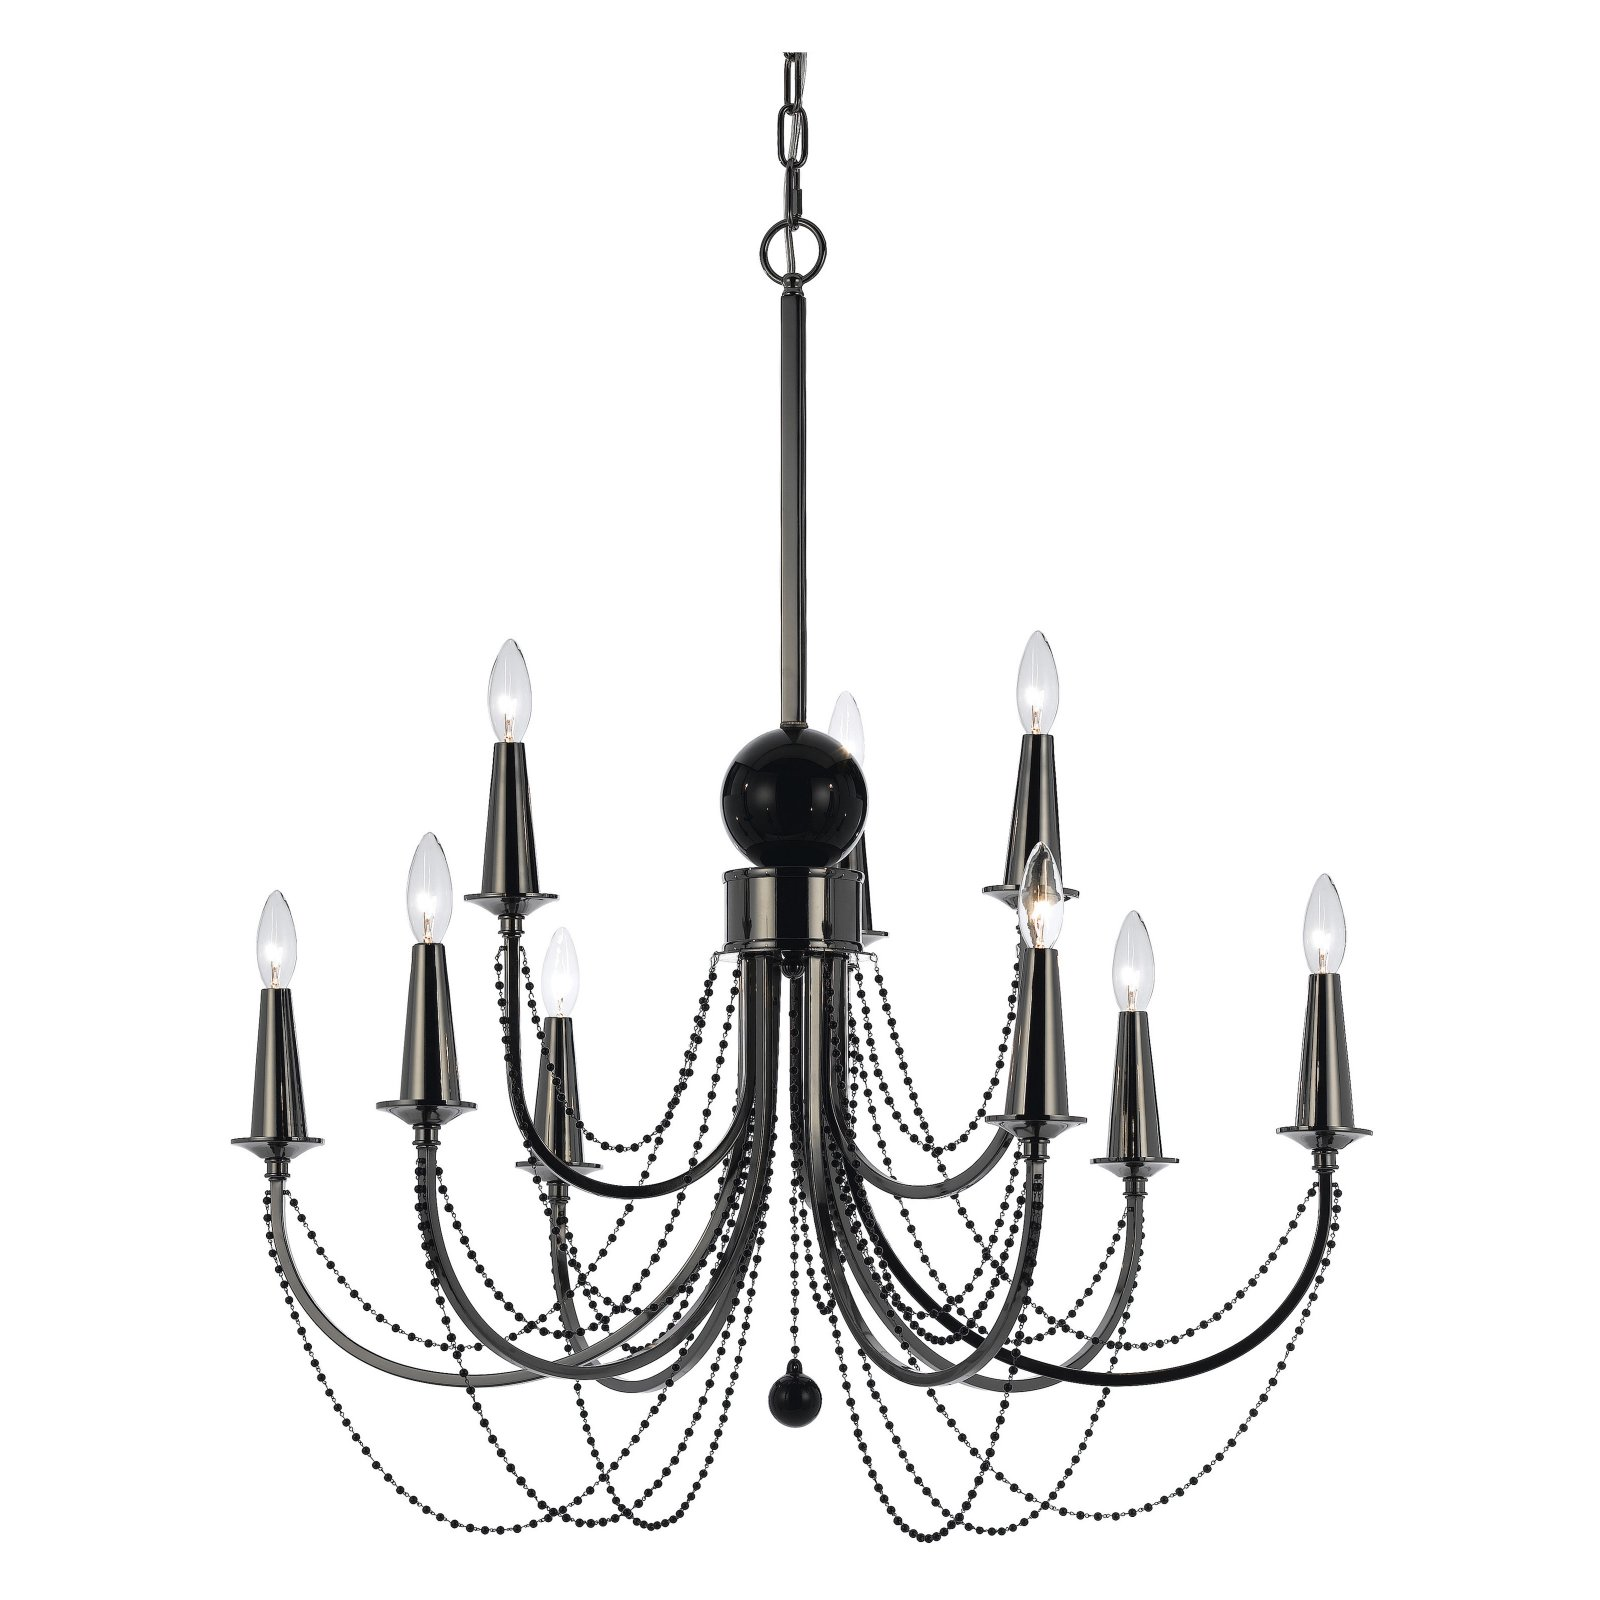 AF Lighting 8449 Nine-Light Chandelier in Black Nickel